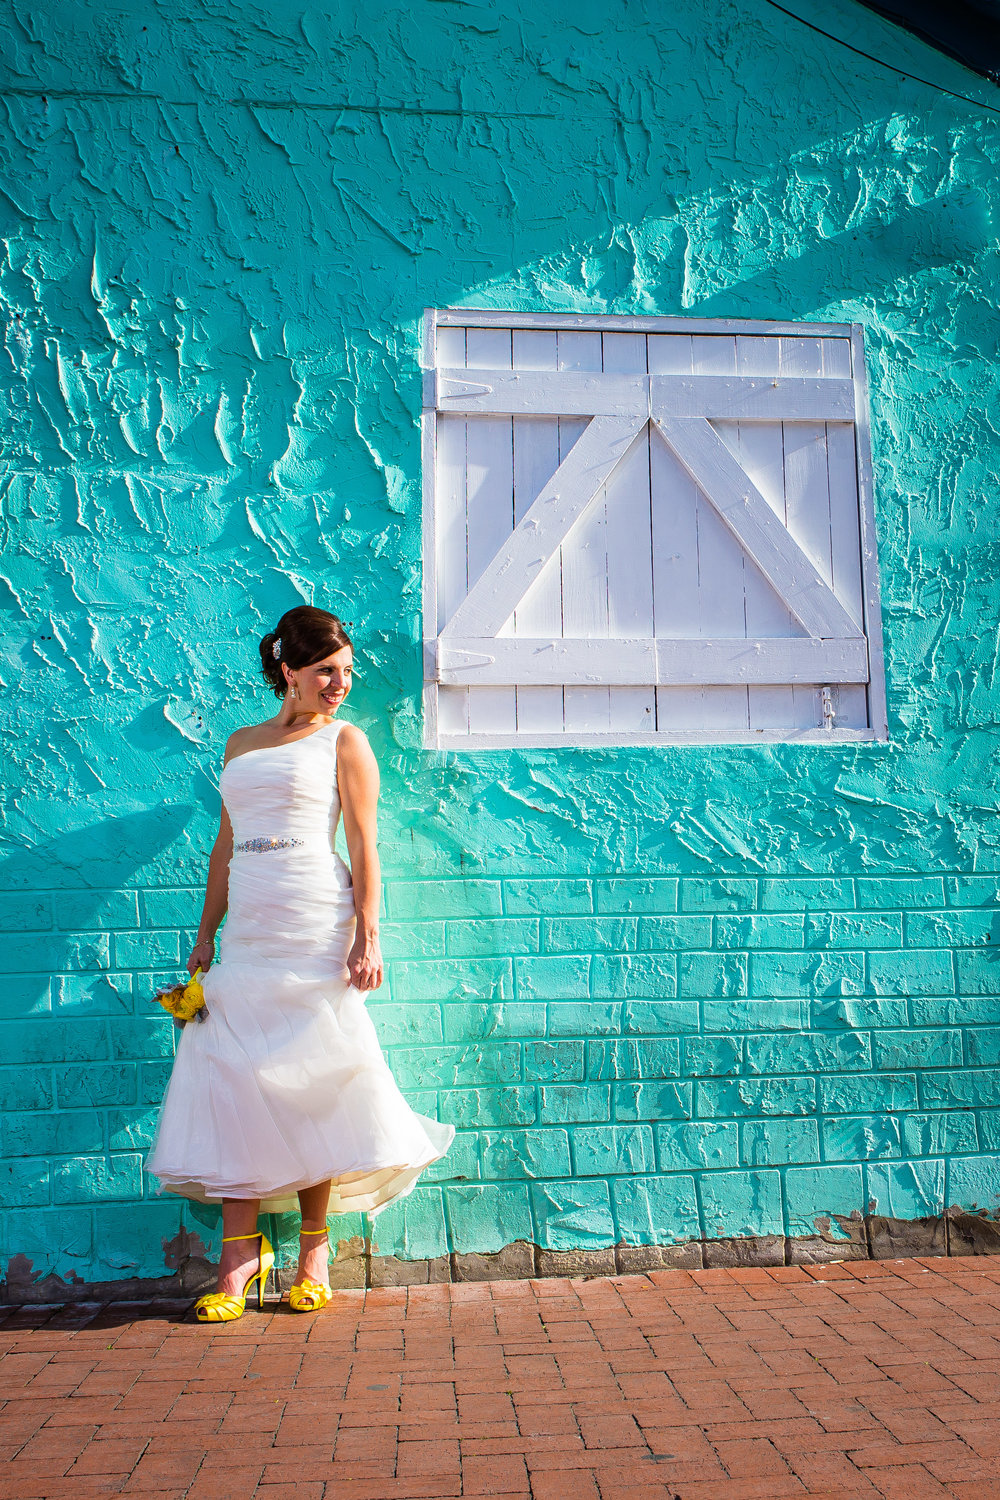 Bride Posing on Teal Blue Wall with Yellow Heels in Bahama Village Key West